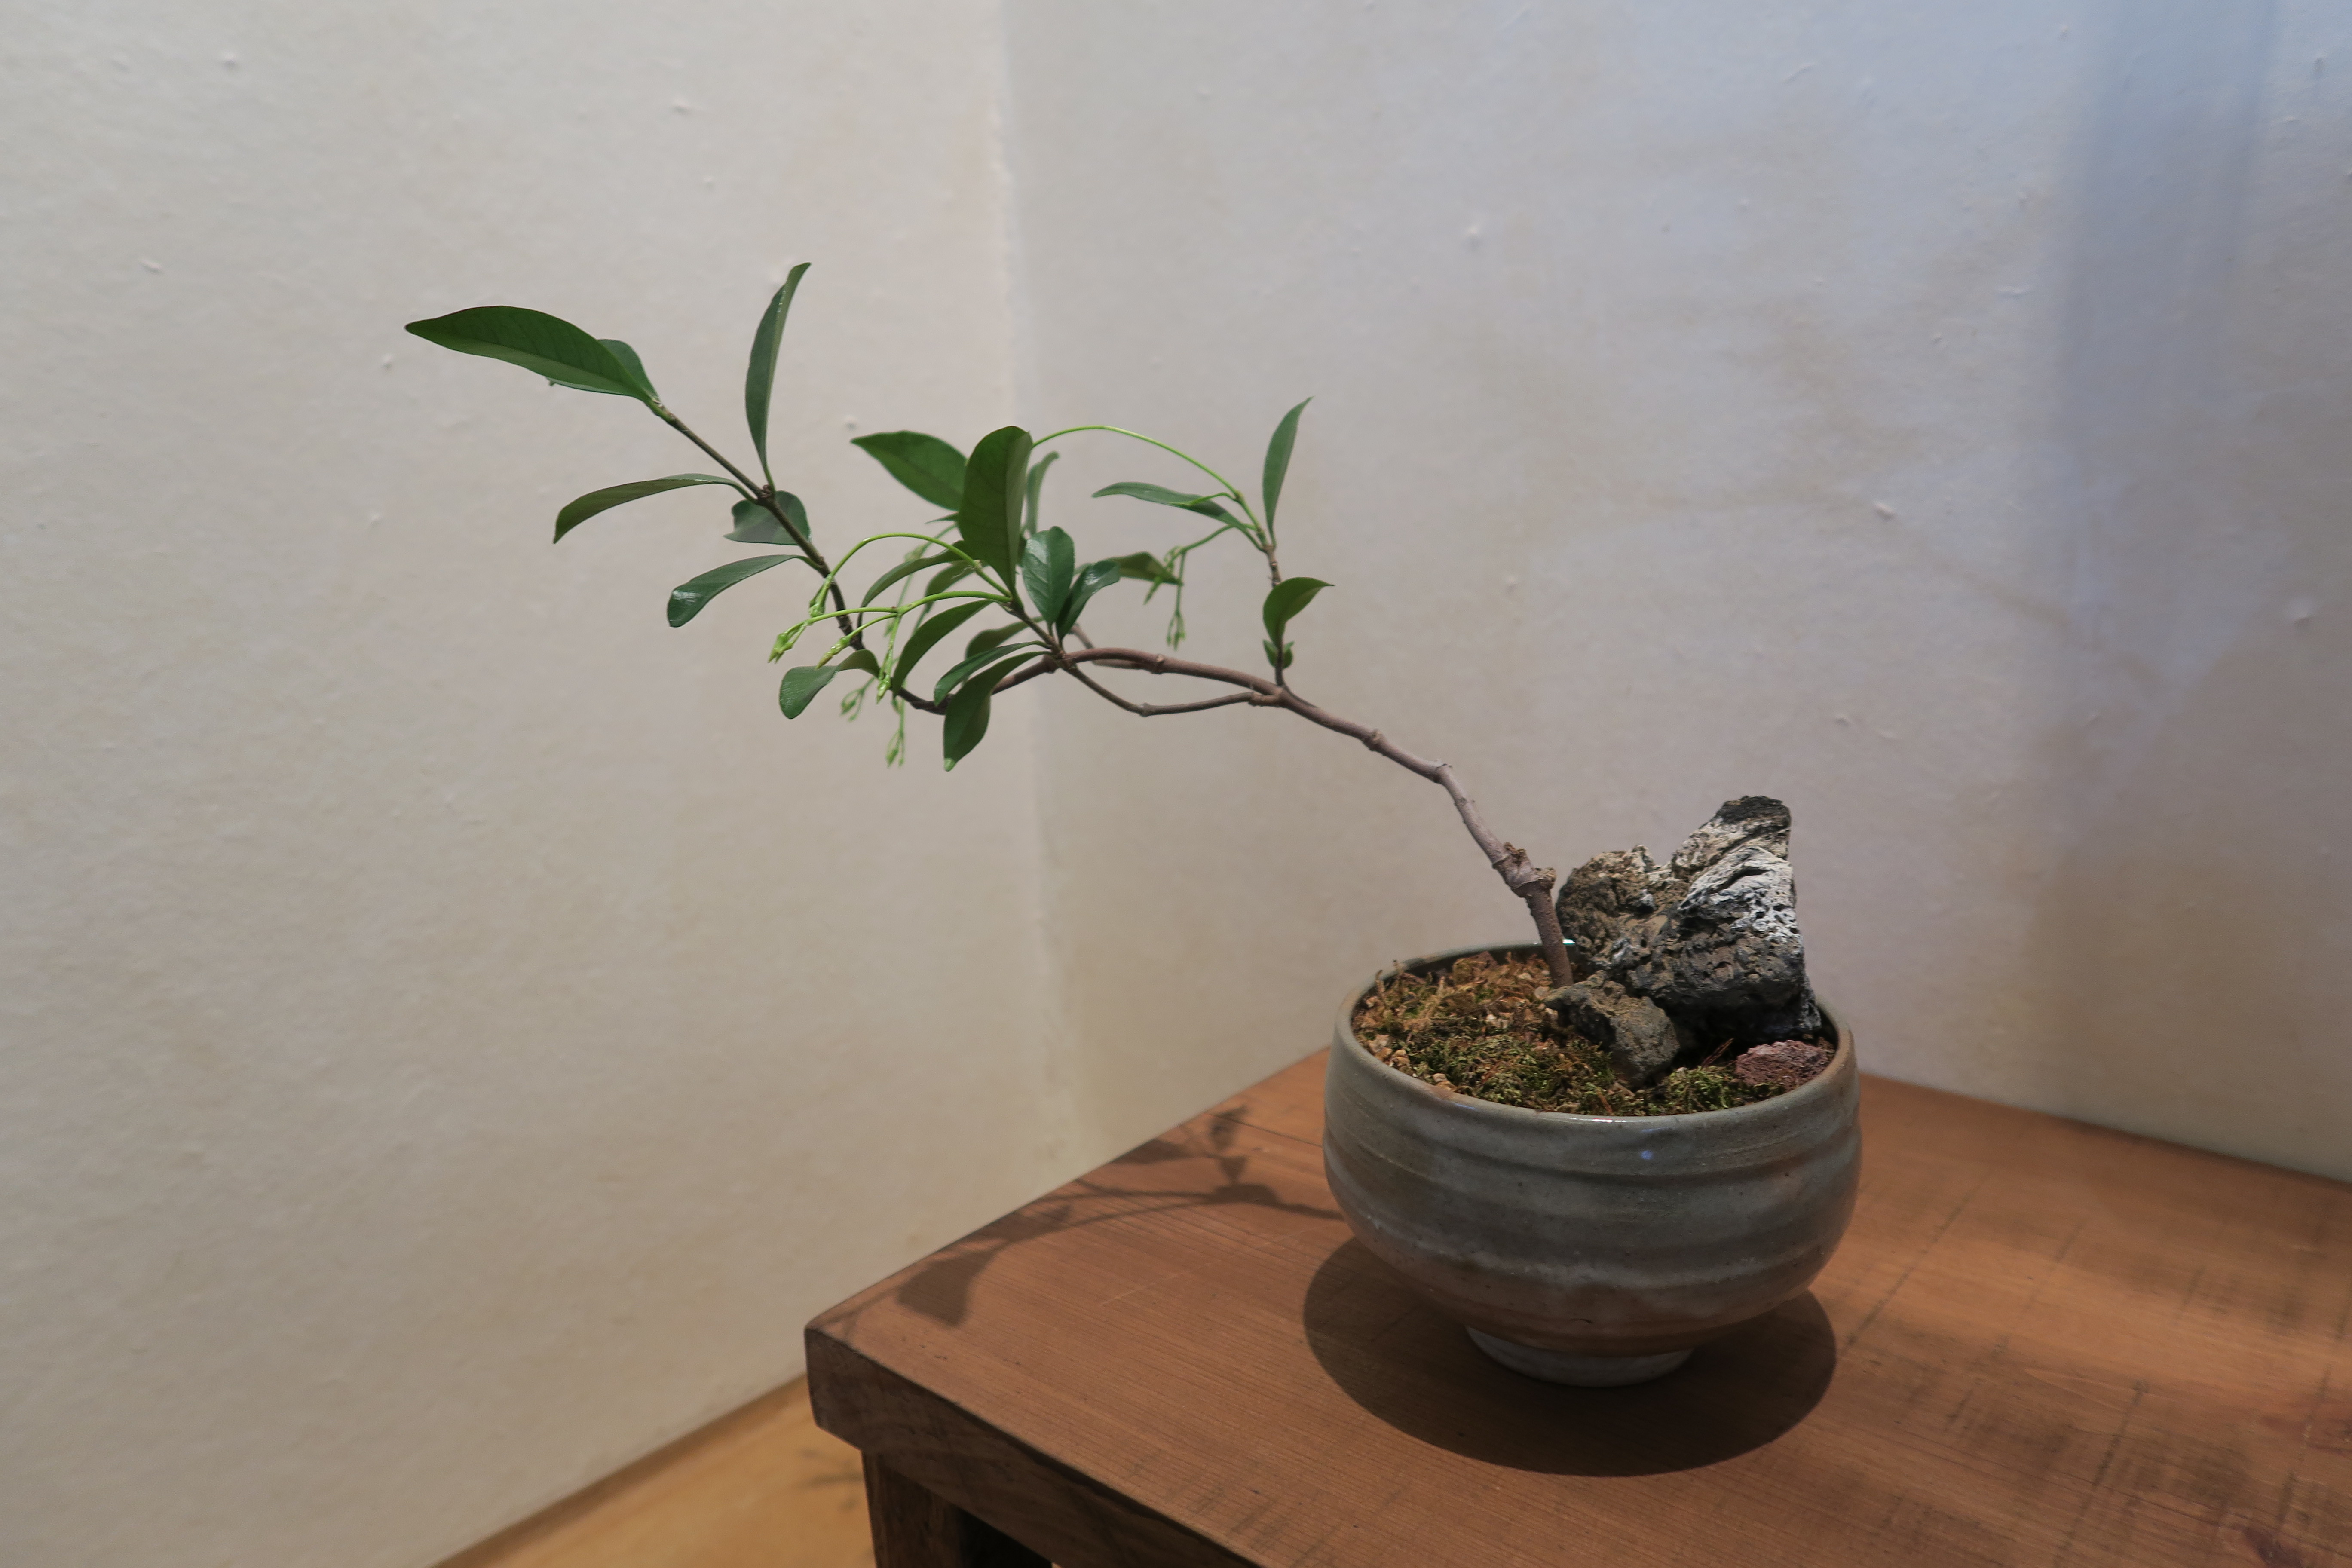 A potted green plant seen at a cafe in Gyeongju, South Korea.